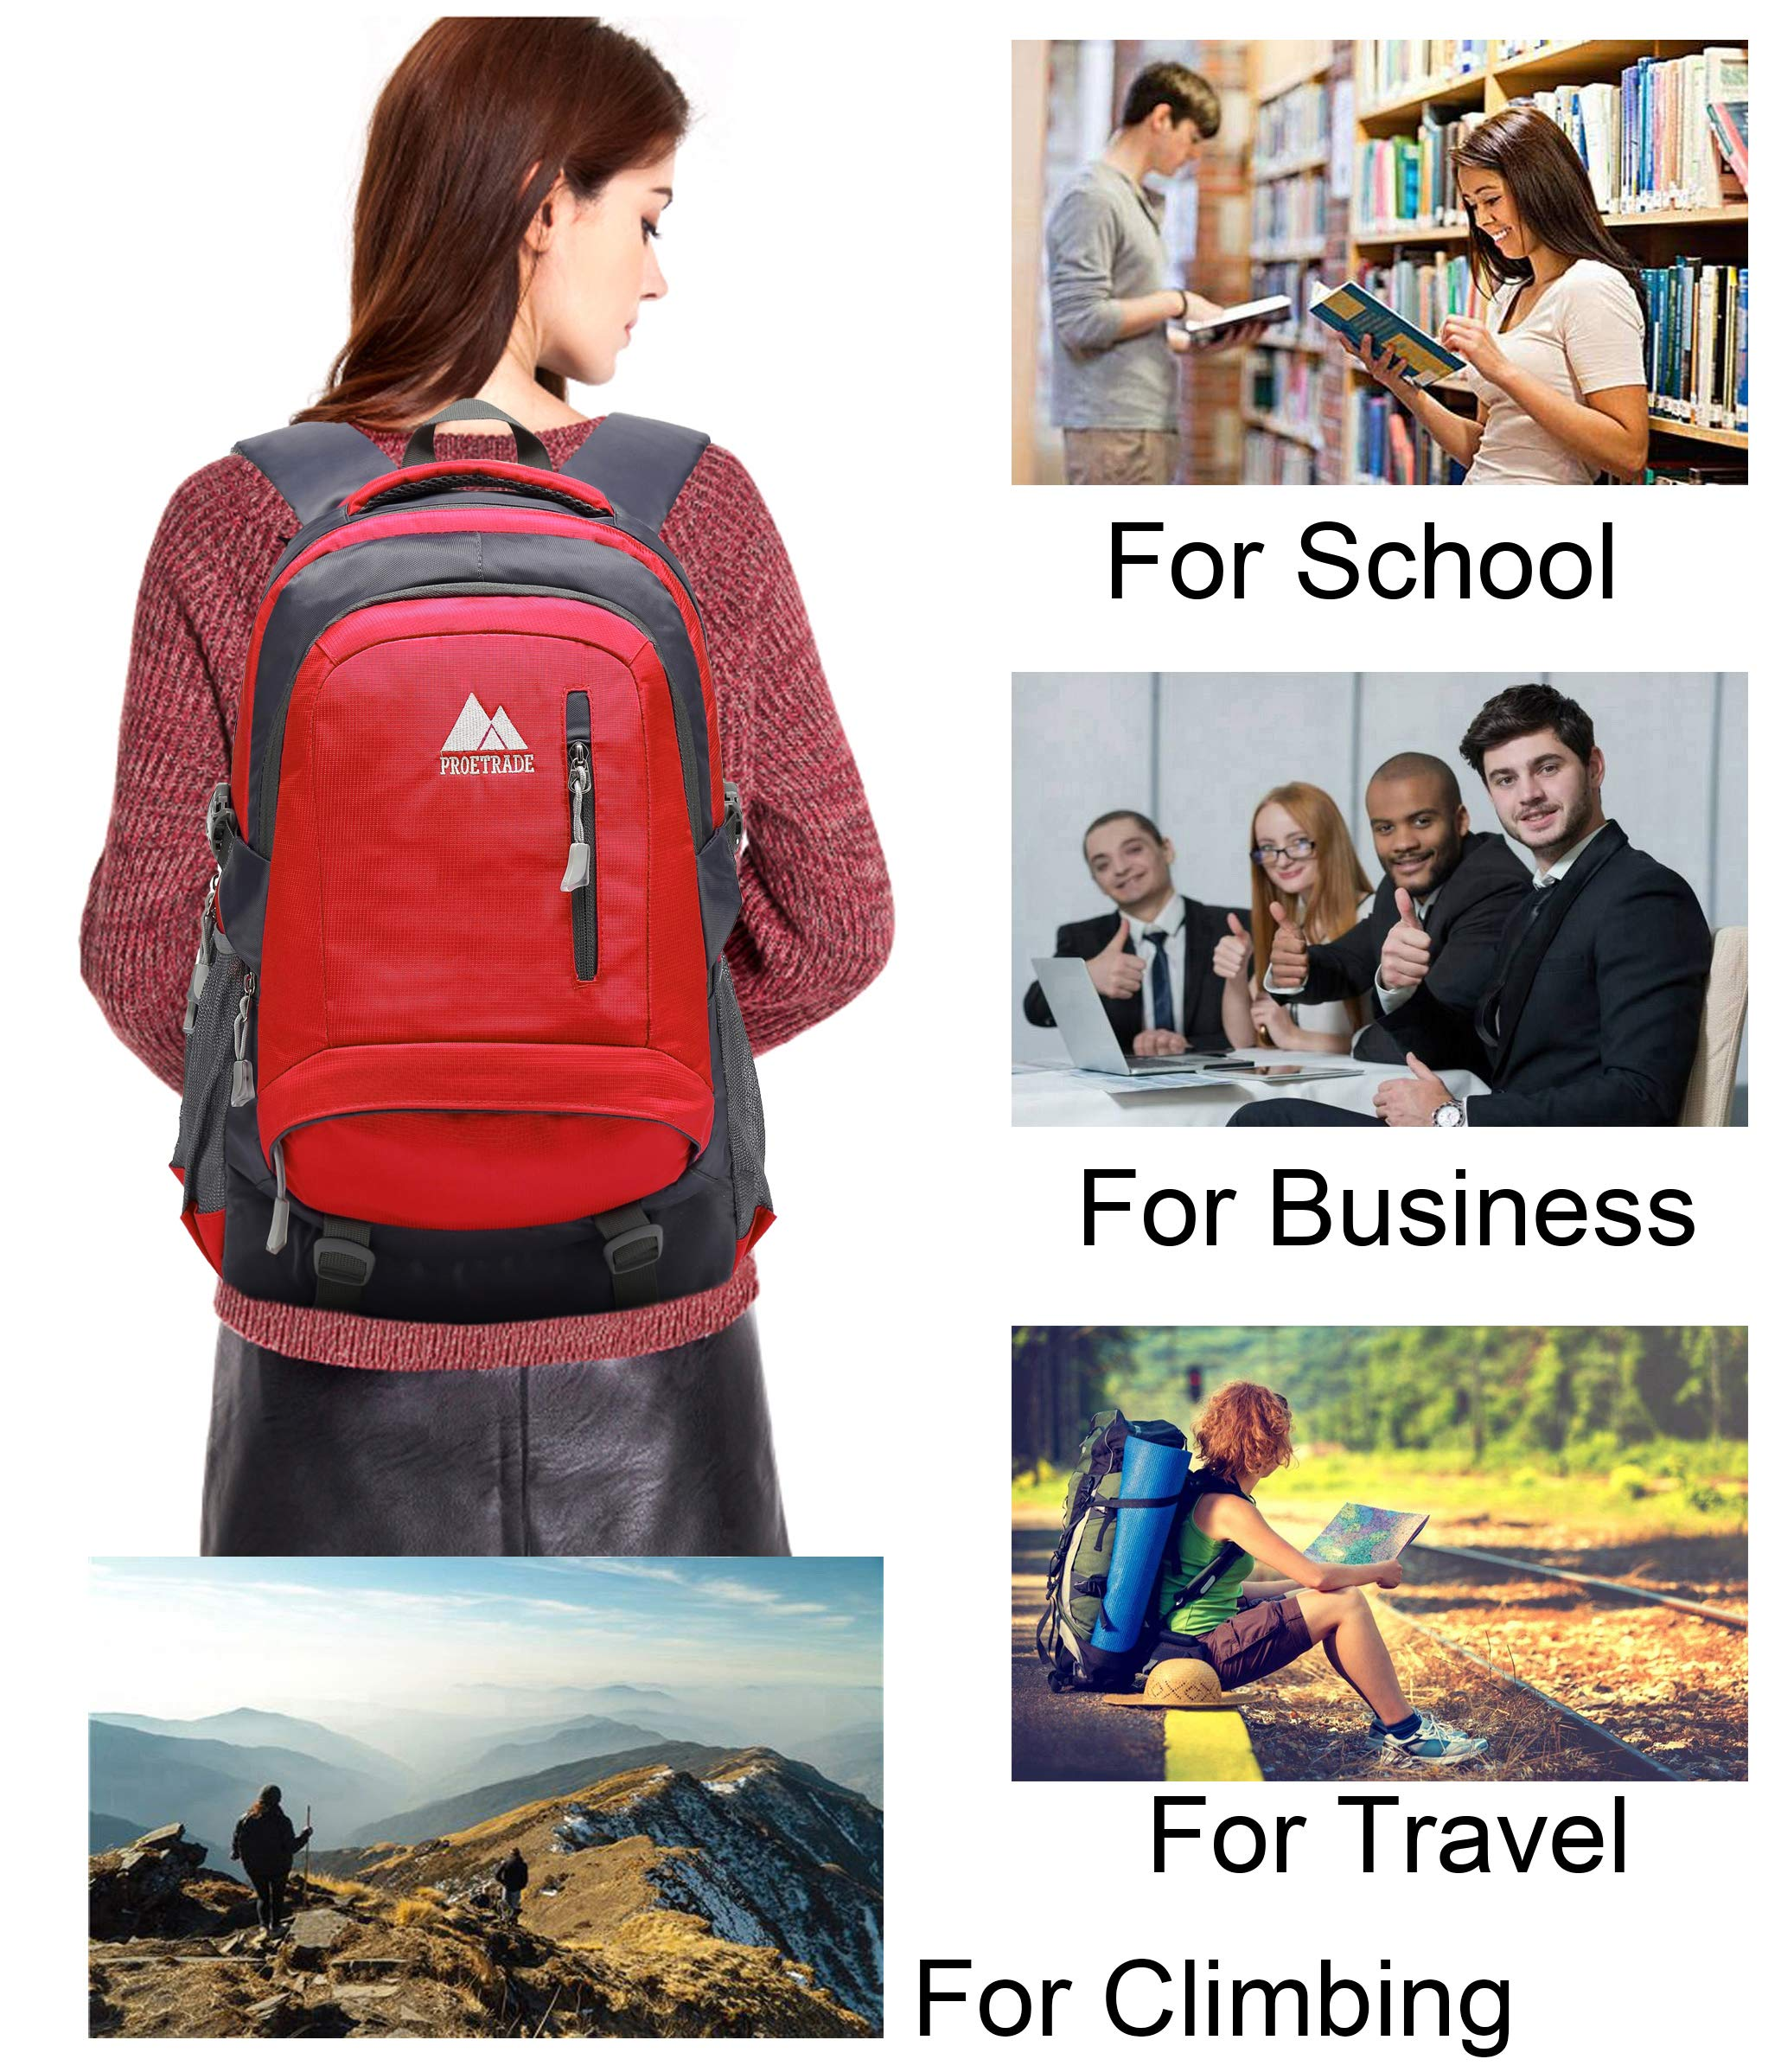 School Backpack BookBag For College Travel Hiking Fit Laptop Up to 15.6 Inch Water Resistant (Red) by ProEtrade (Image #6)